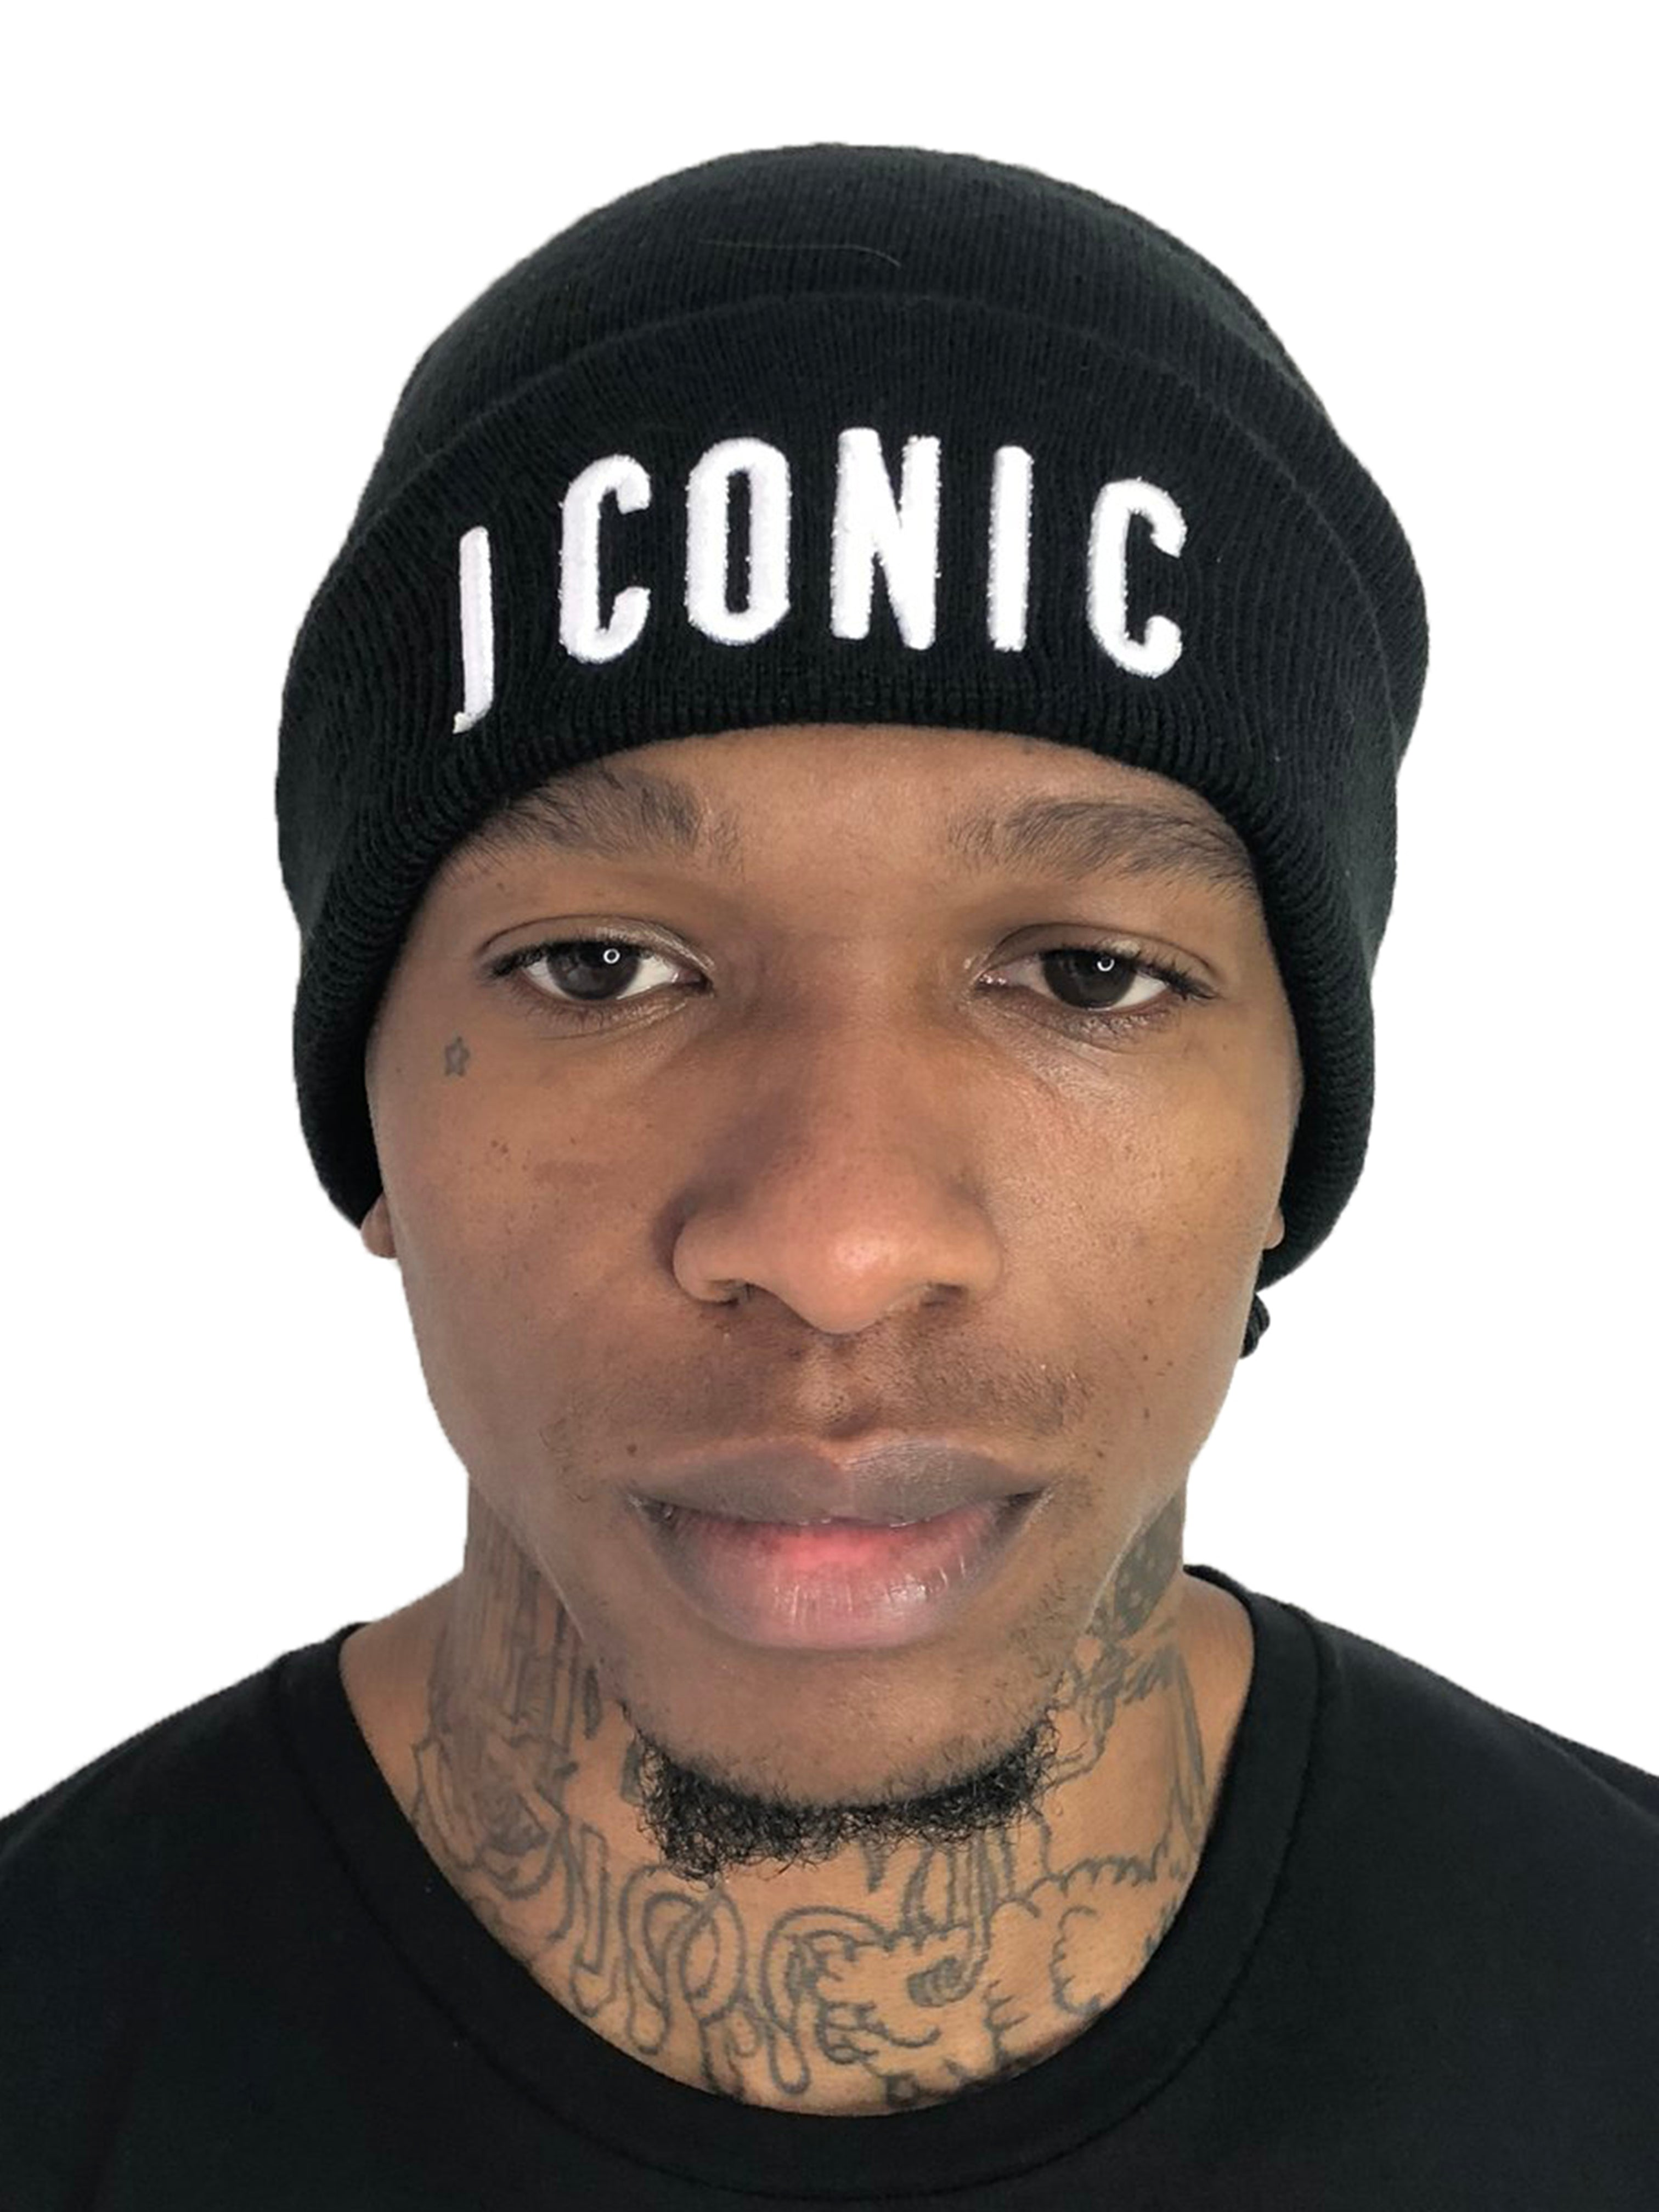 Men 'Iconic' Black Beanie by Brit Boss - Brit Boss